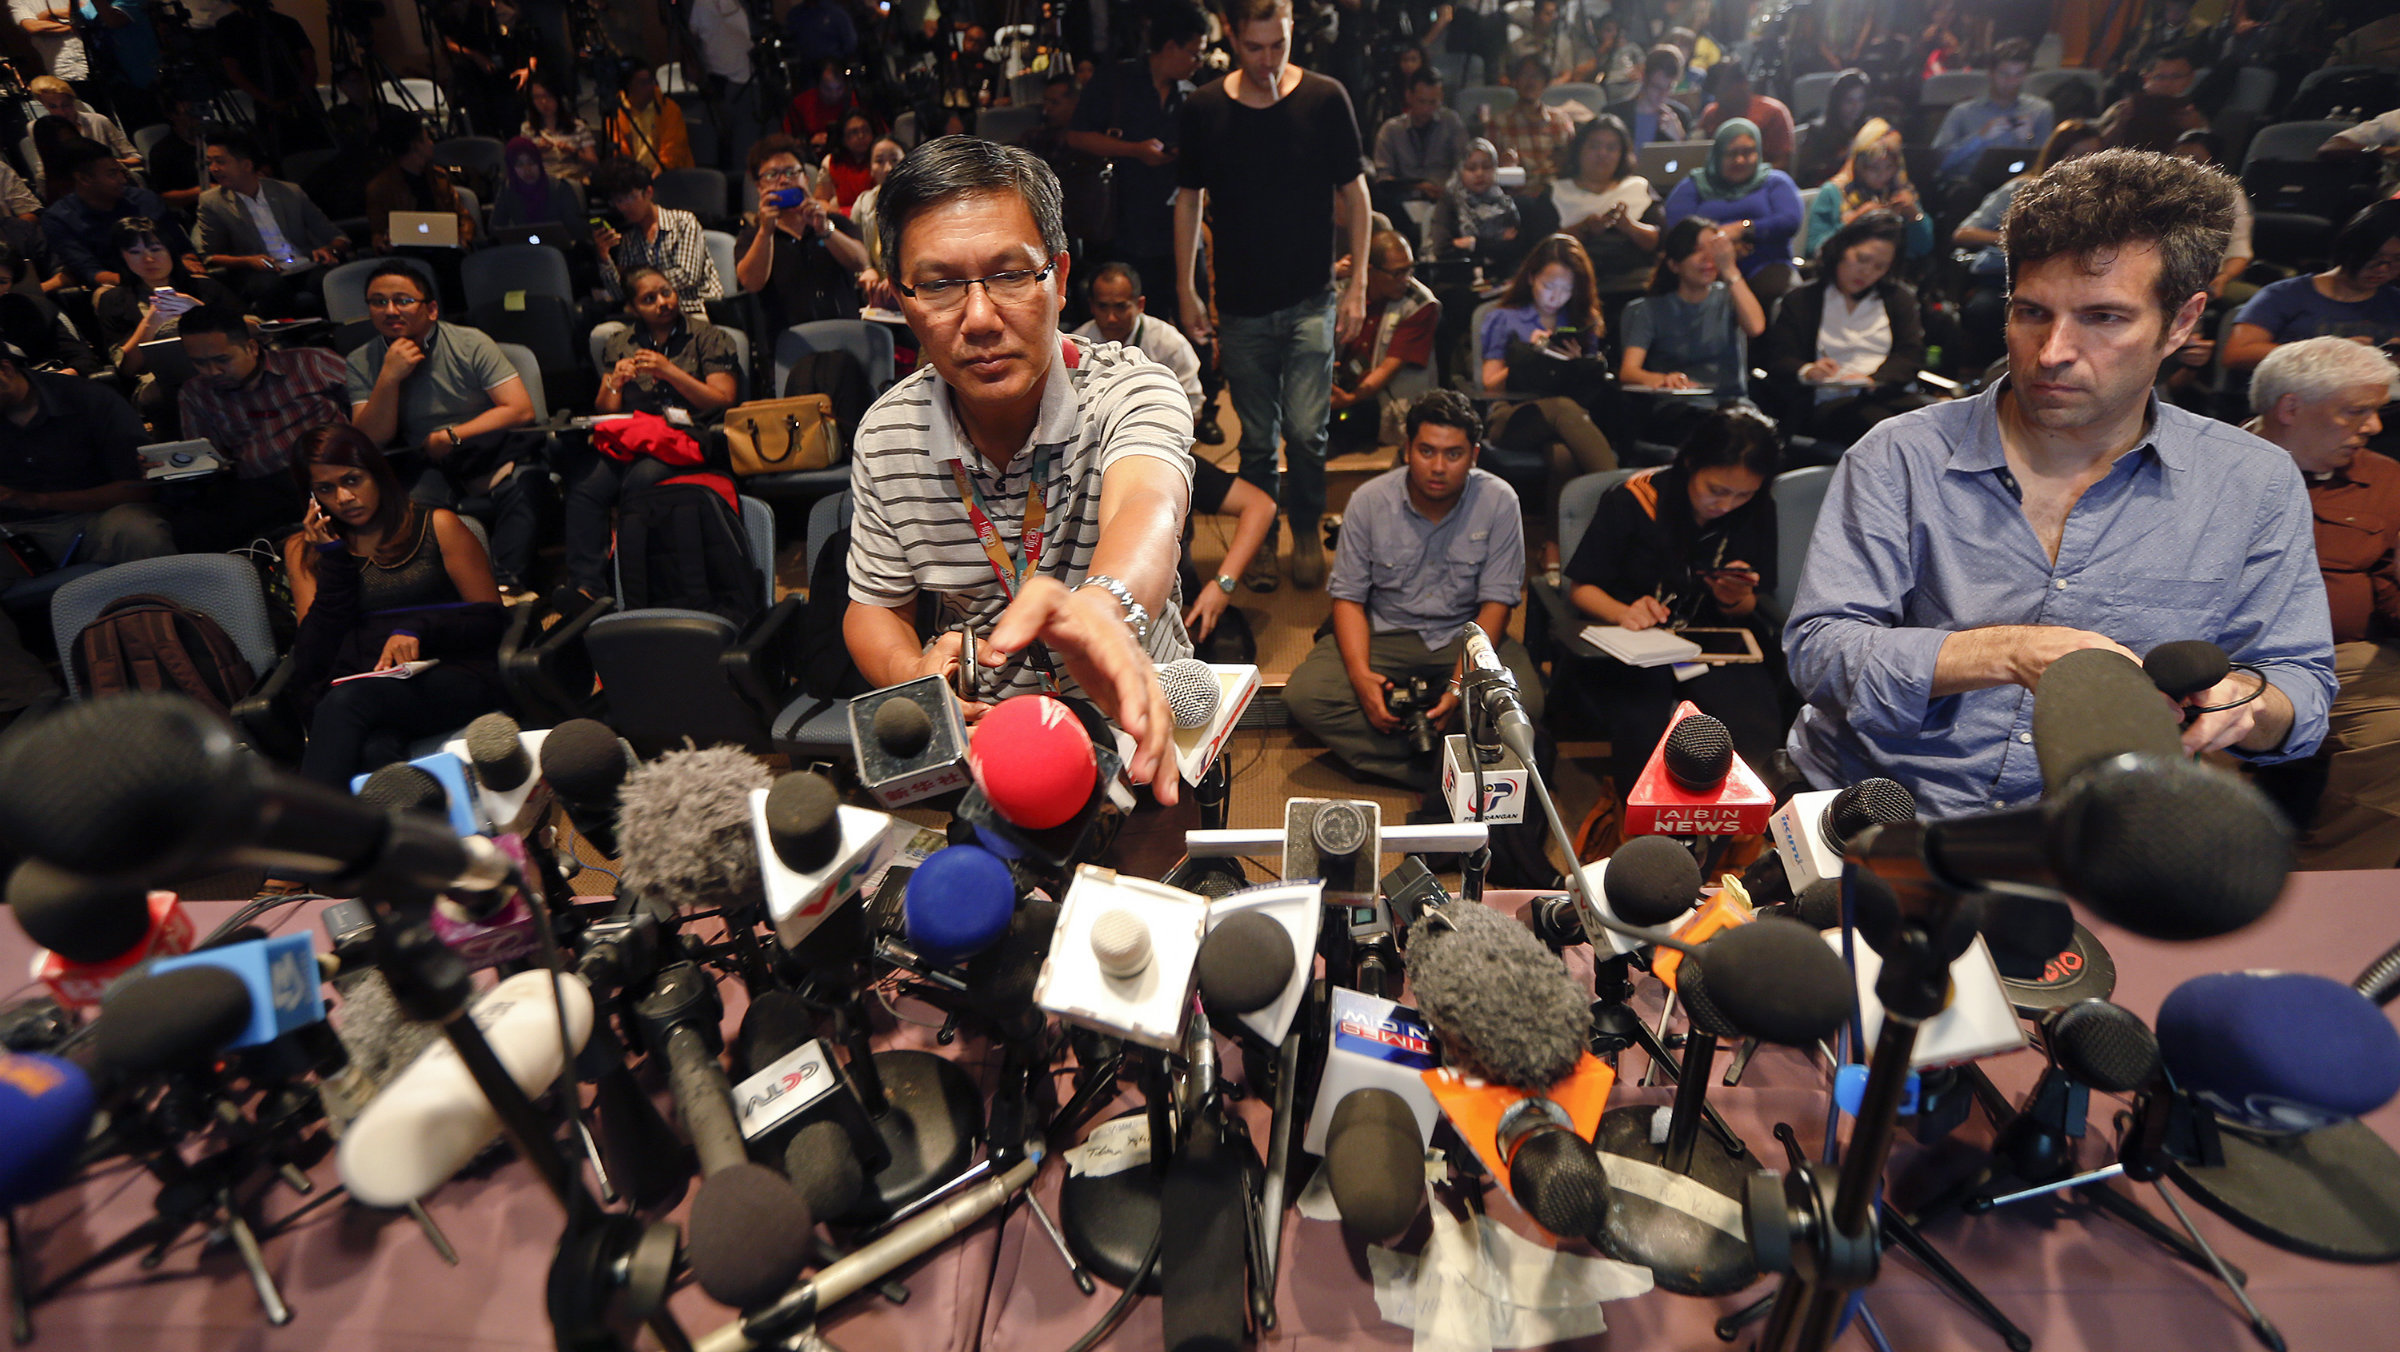 CNN wasn't the only media outlet covering MH370, just the most tenacious one.